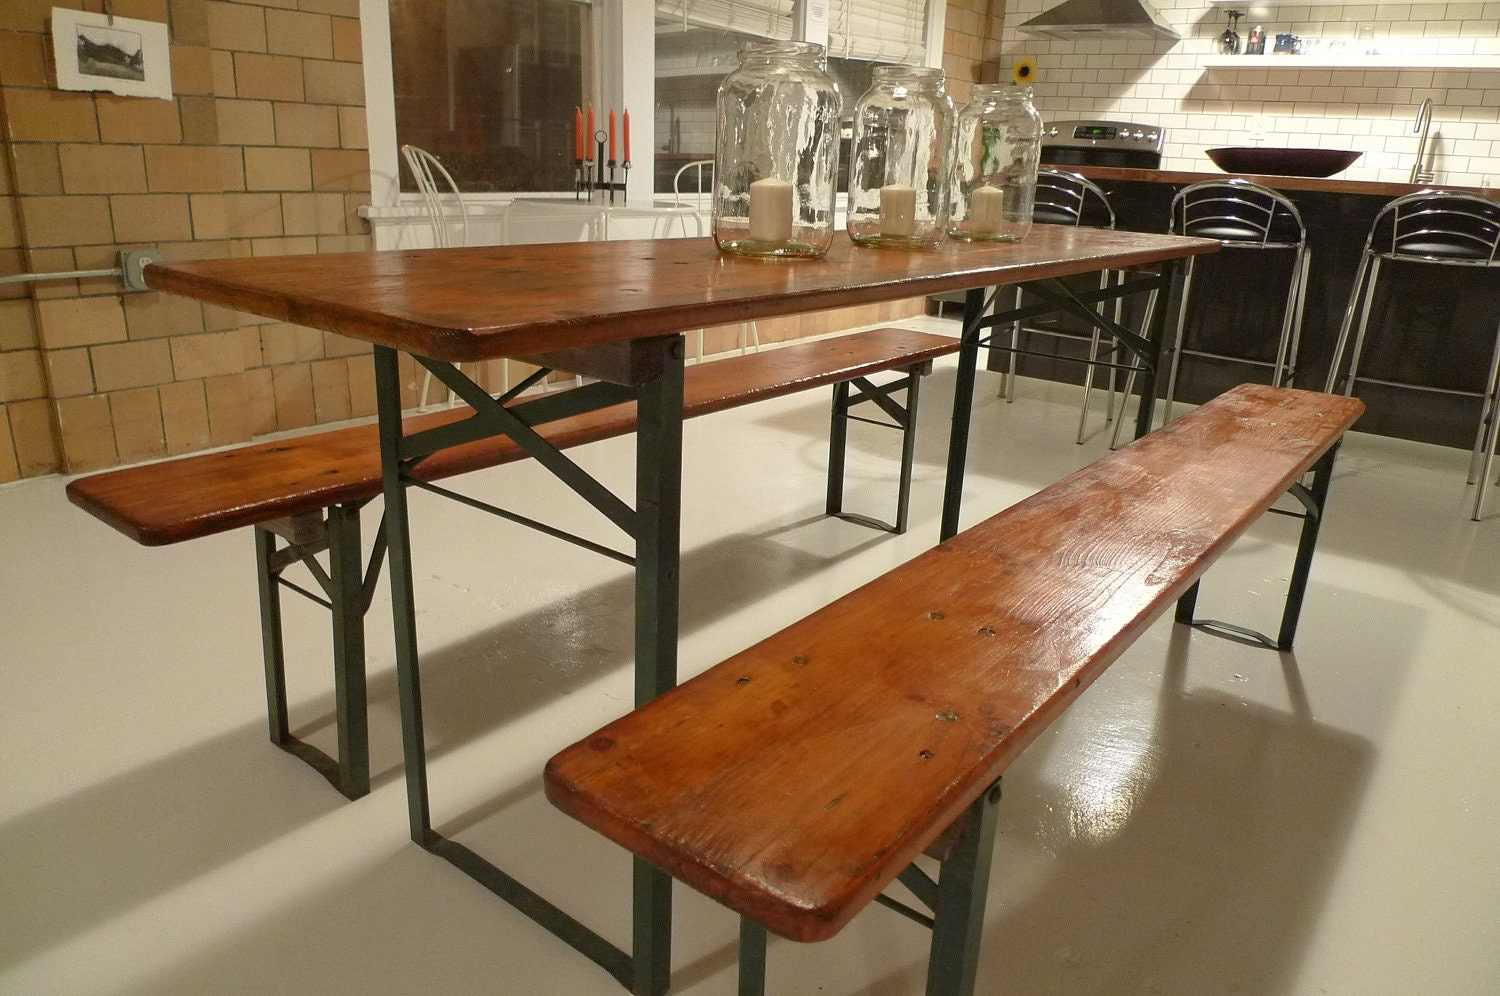 Refurbished German Beer Garden Table With Benches